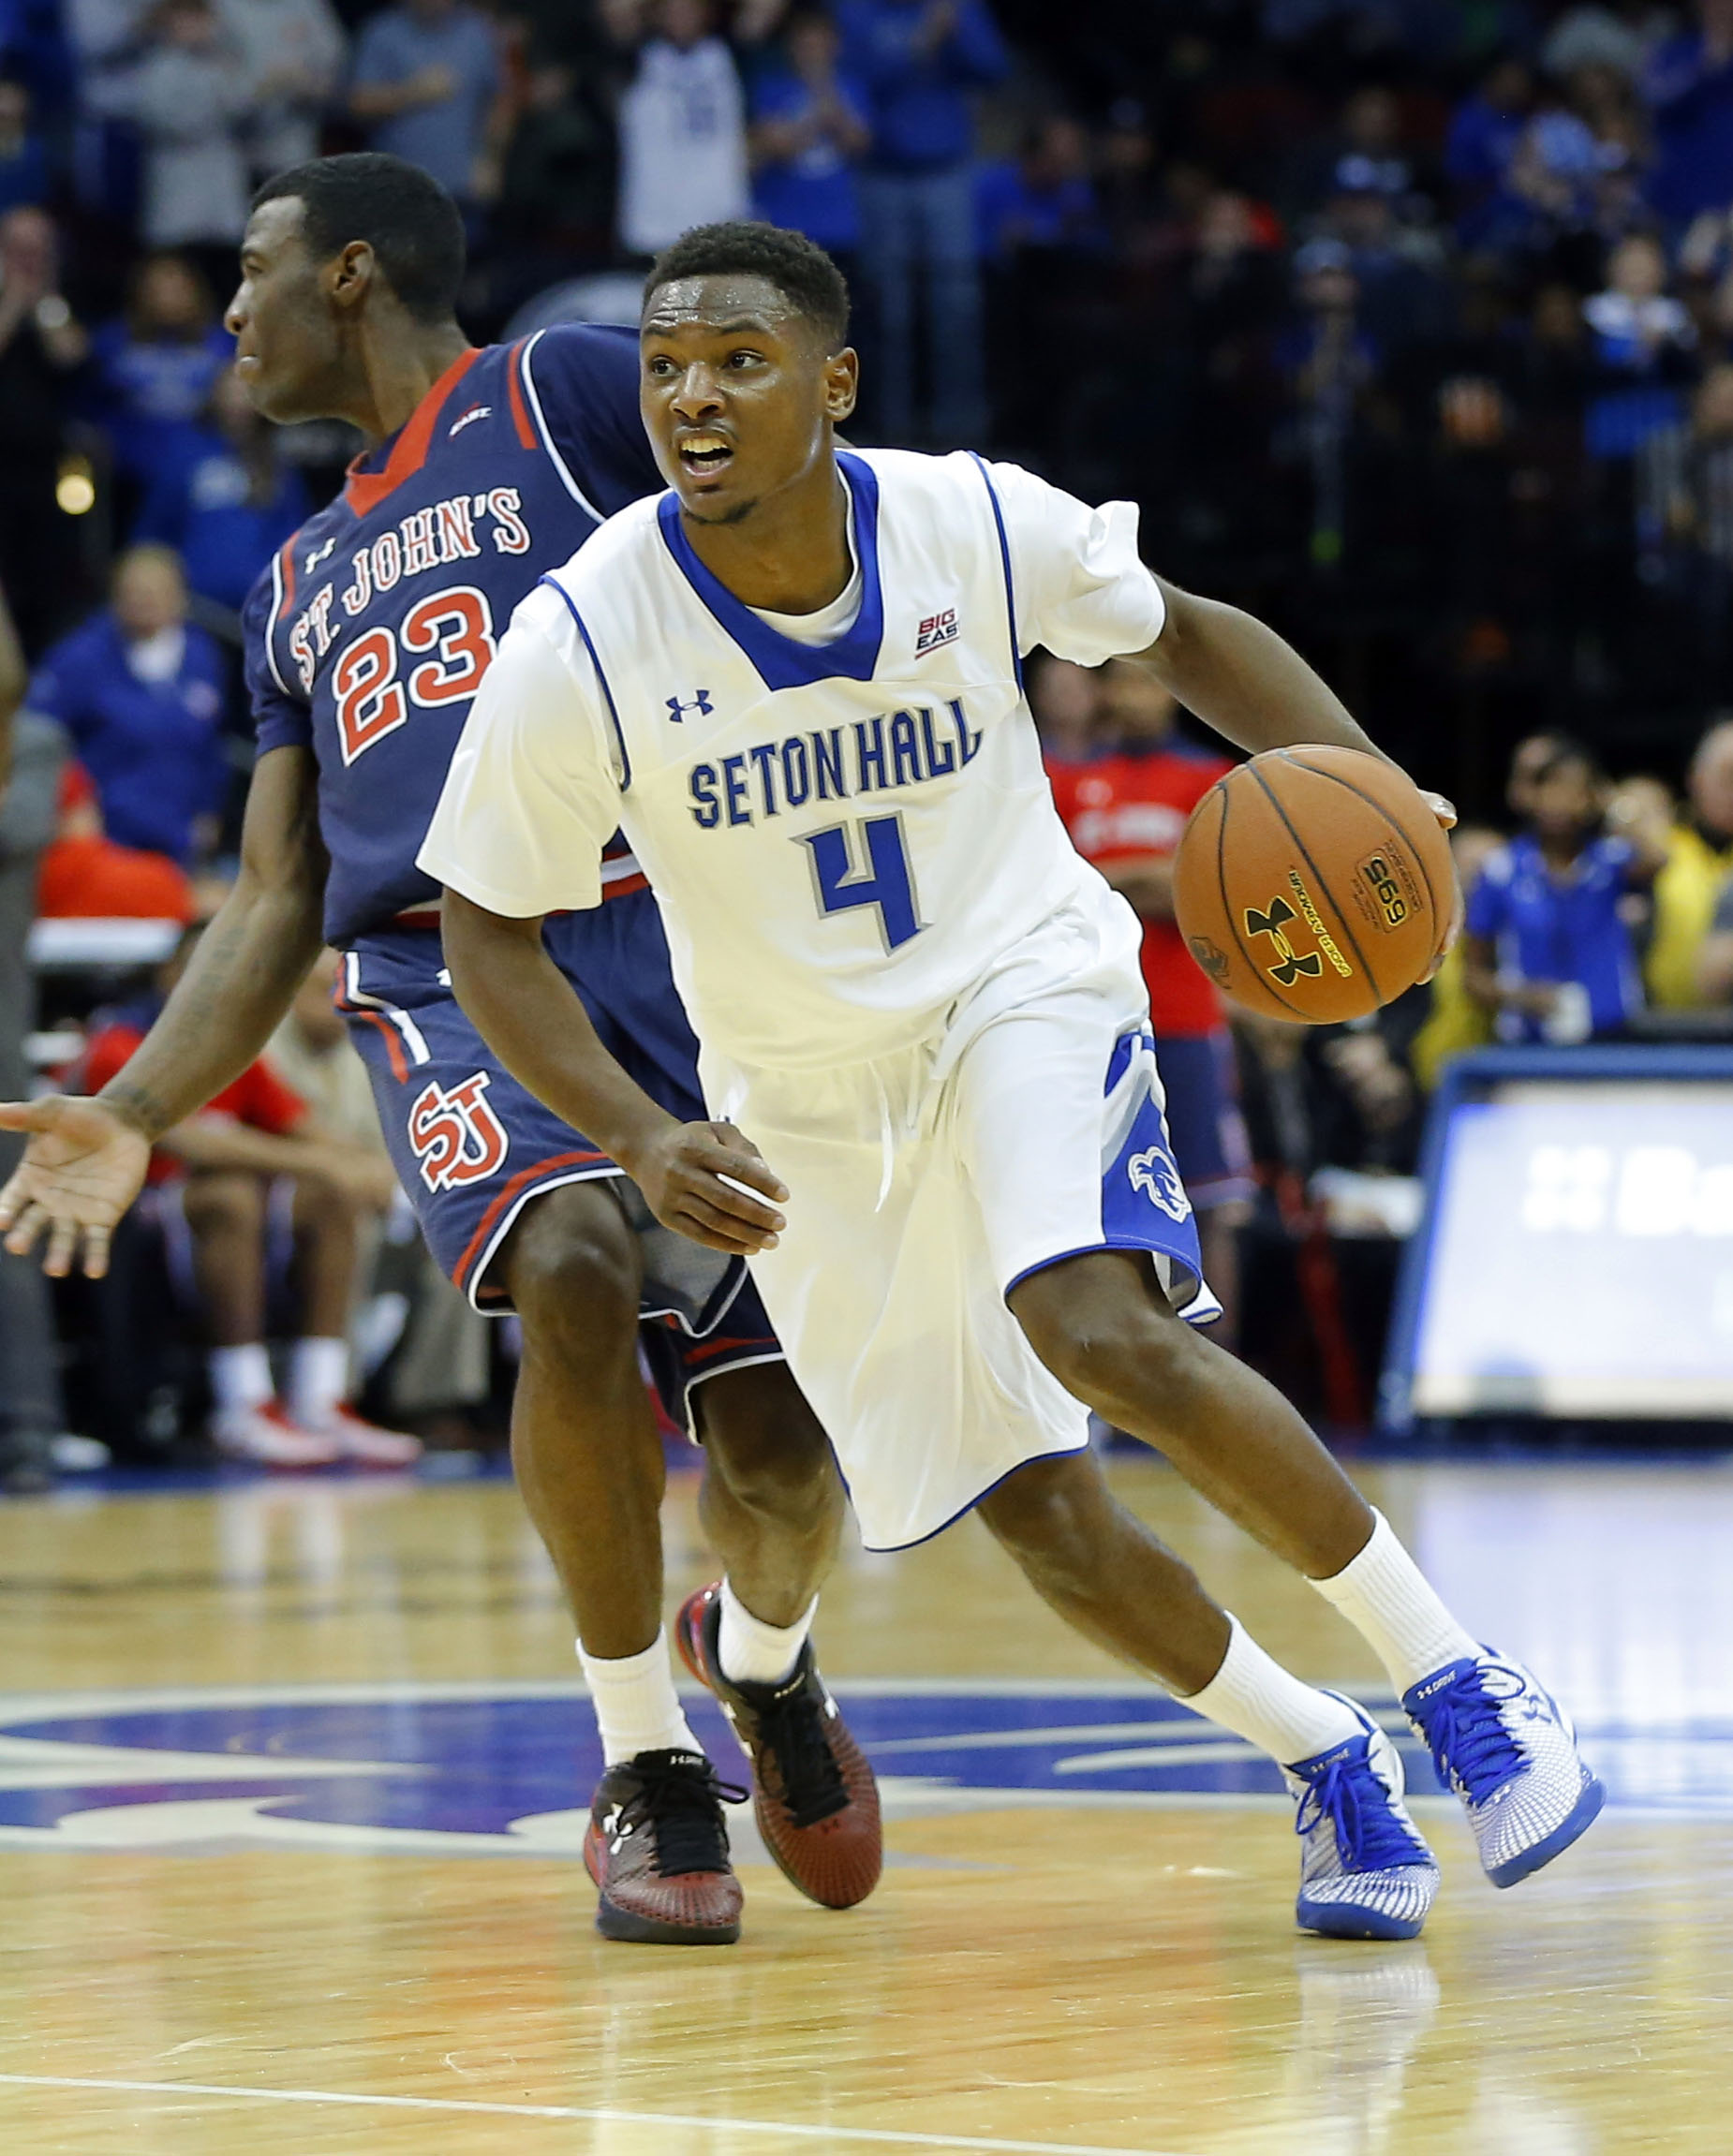 NCAA Basketball: St. John's at Seton Hall